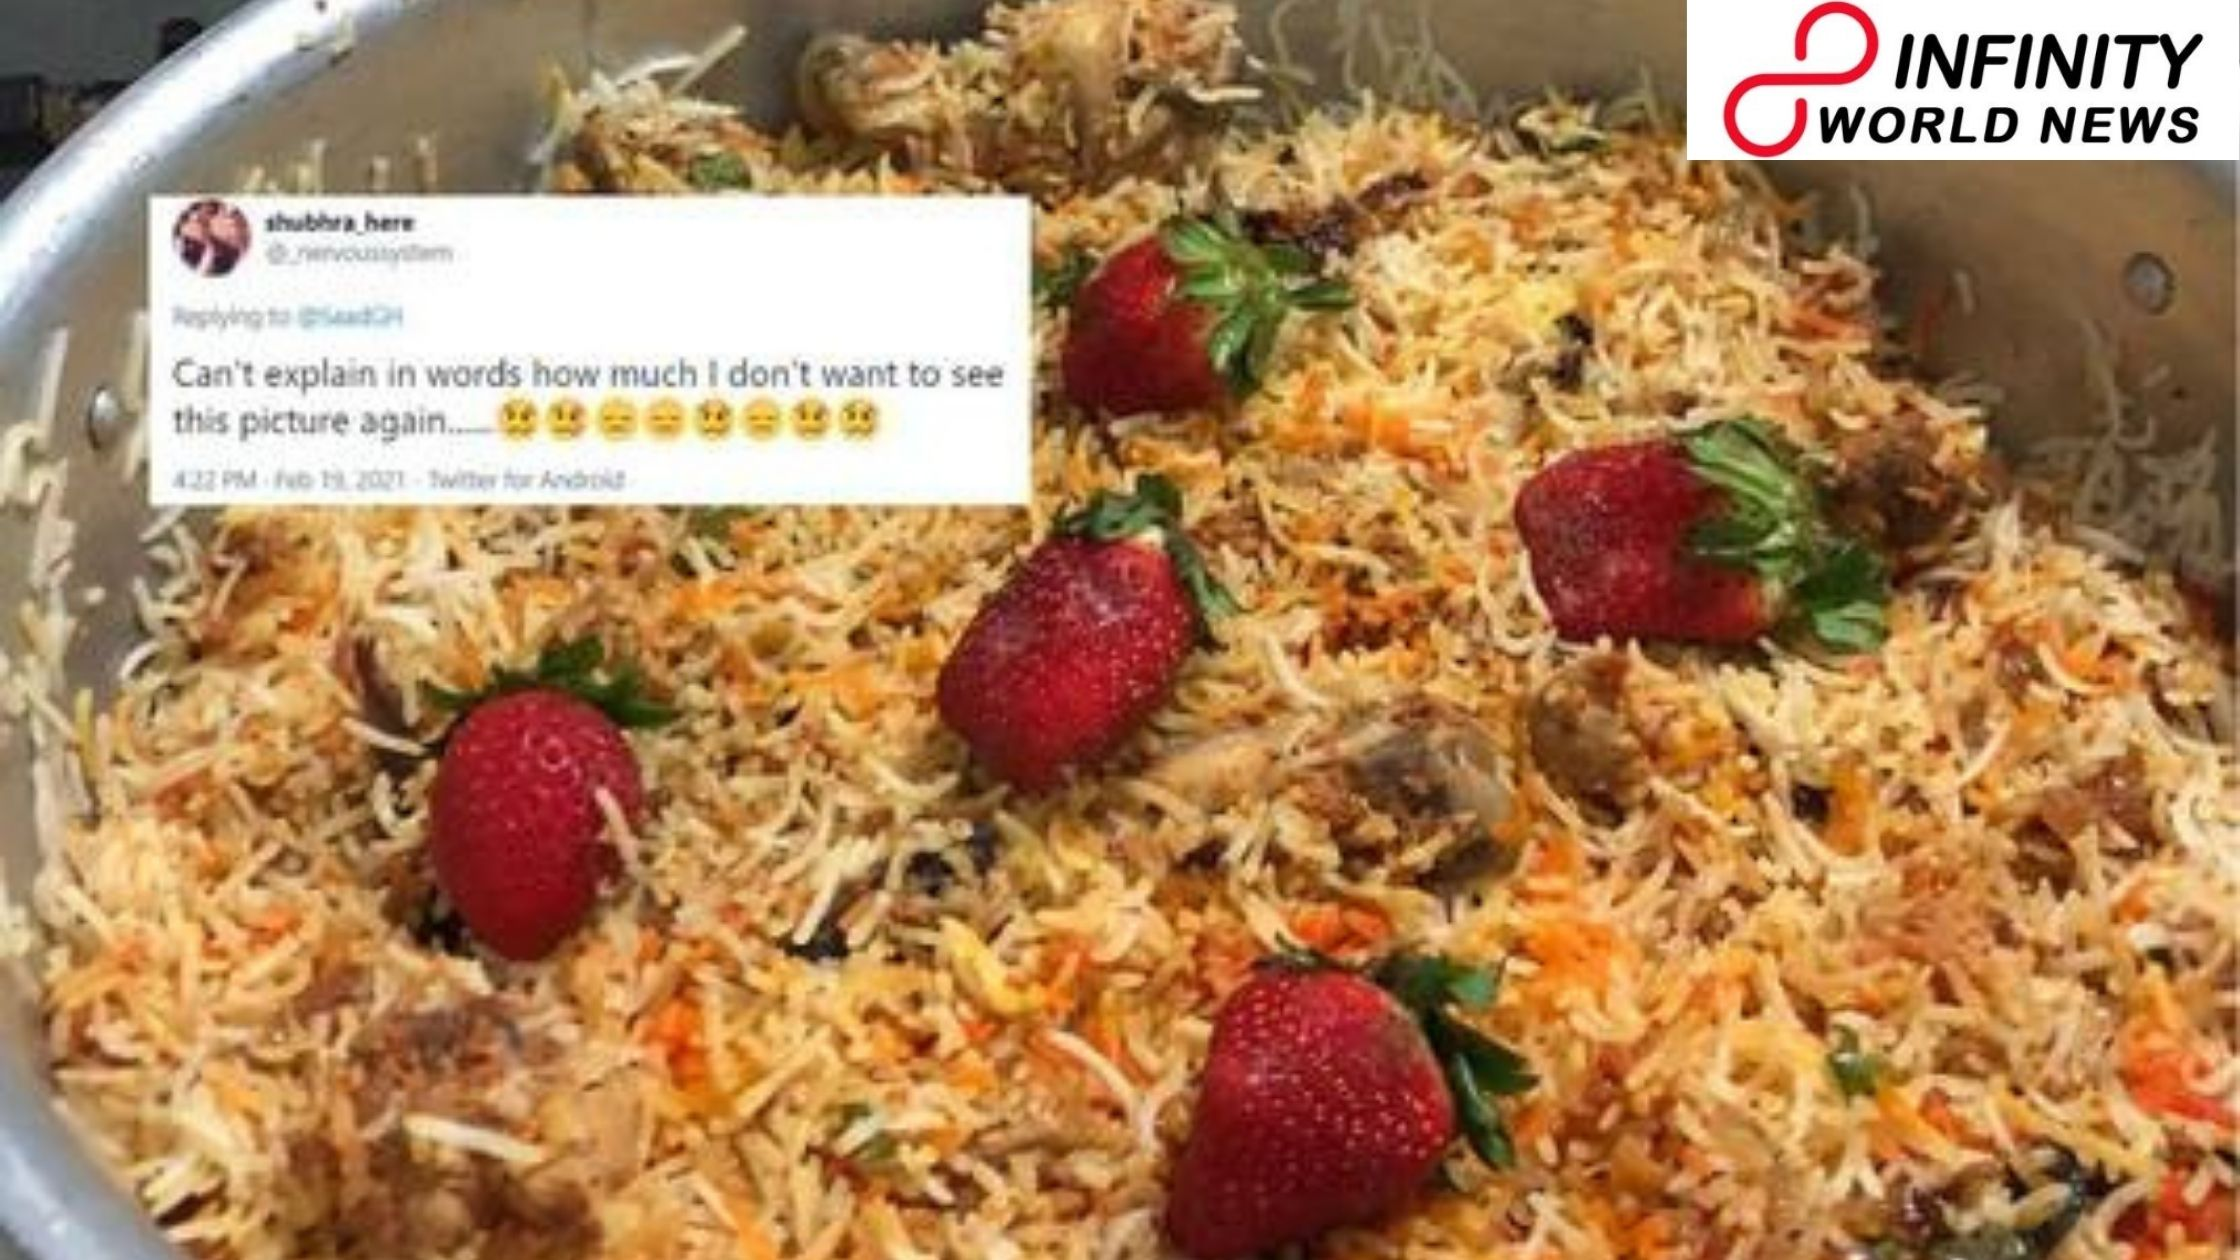 'Strawberry Biryani' is the Freshest Bizarre Combo That Every Desi Needs to Unsee